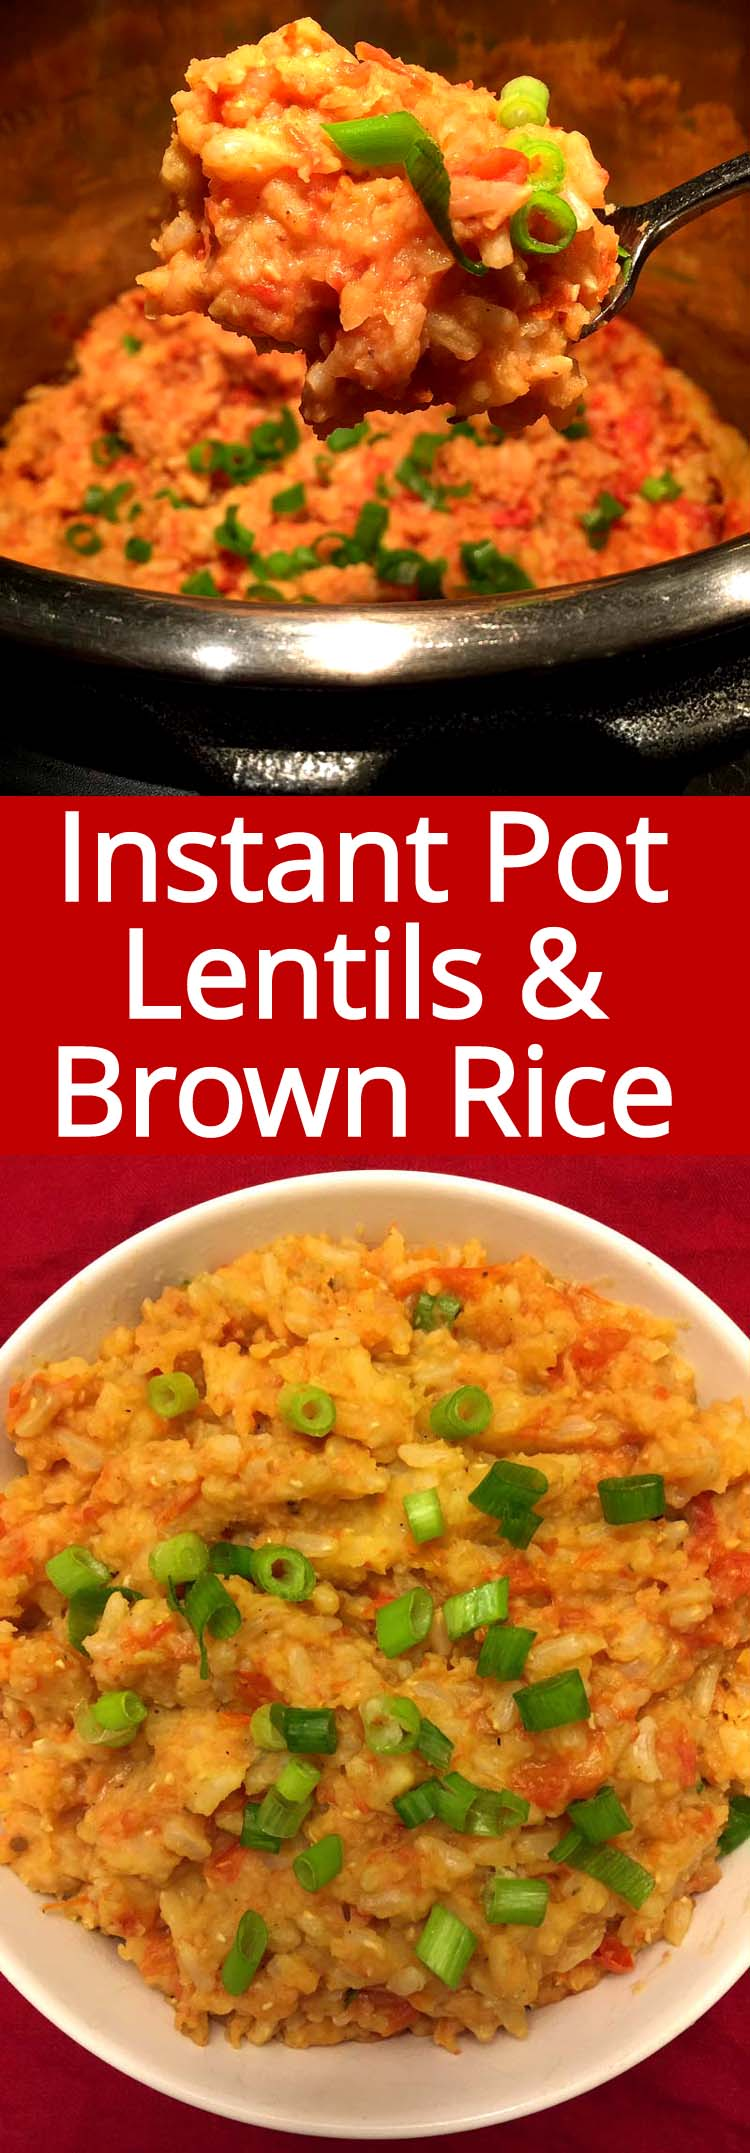 This Instant Pot lentils and brown rice is amazing! Perfect vegan one-pot dinner, super filling!  Just dump the ingredients and press the button!